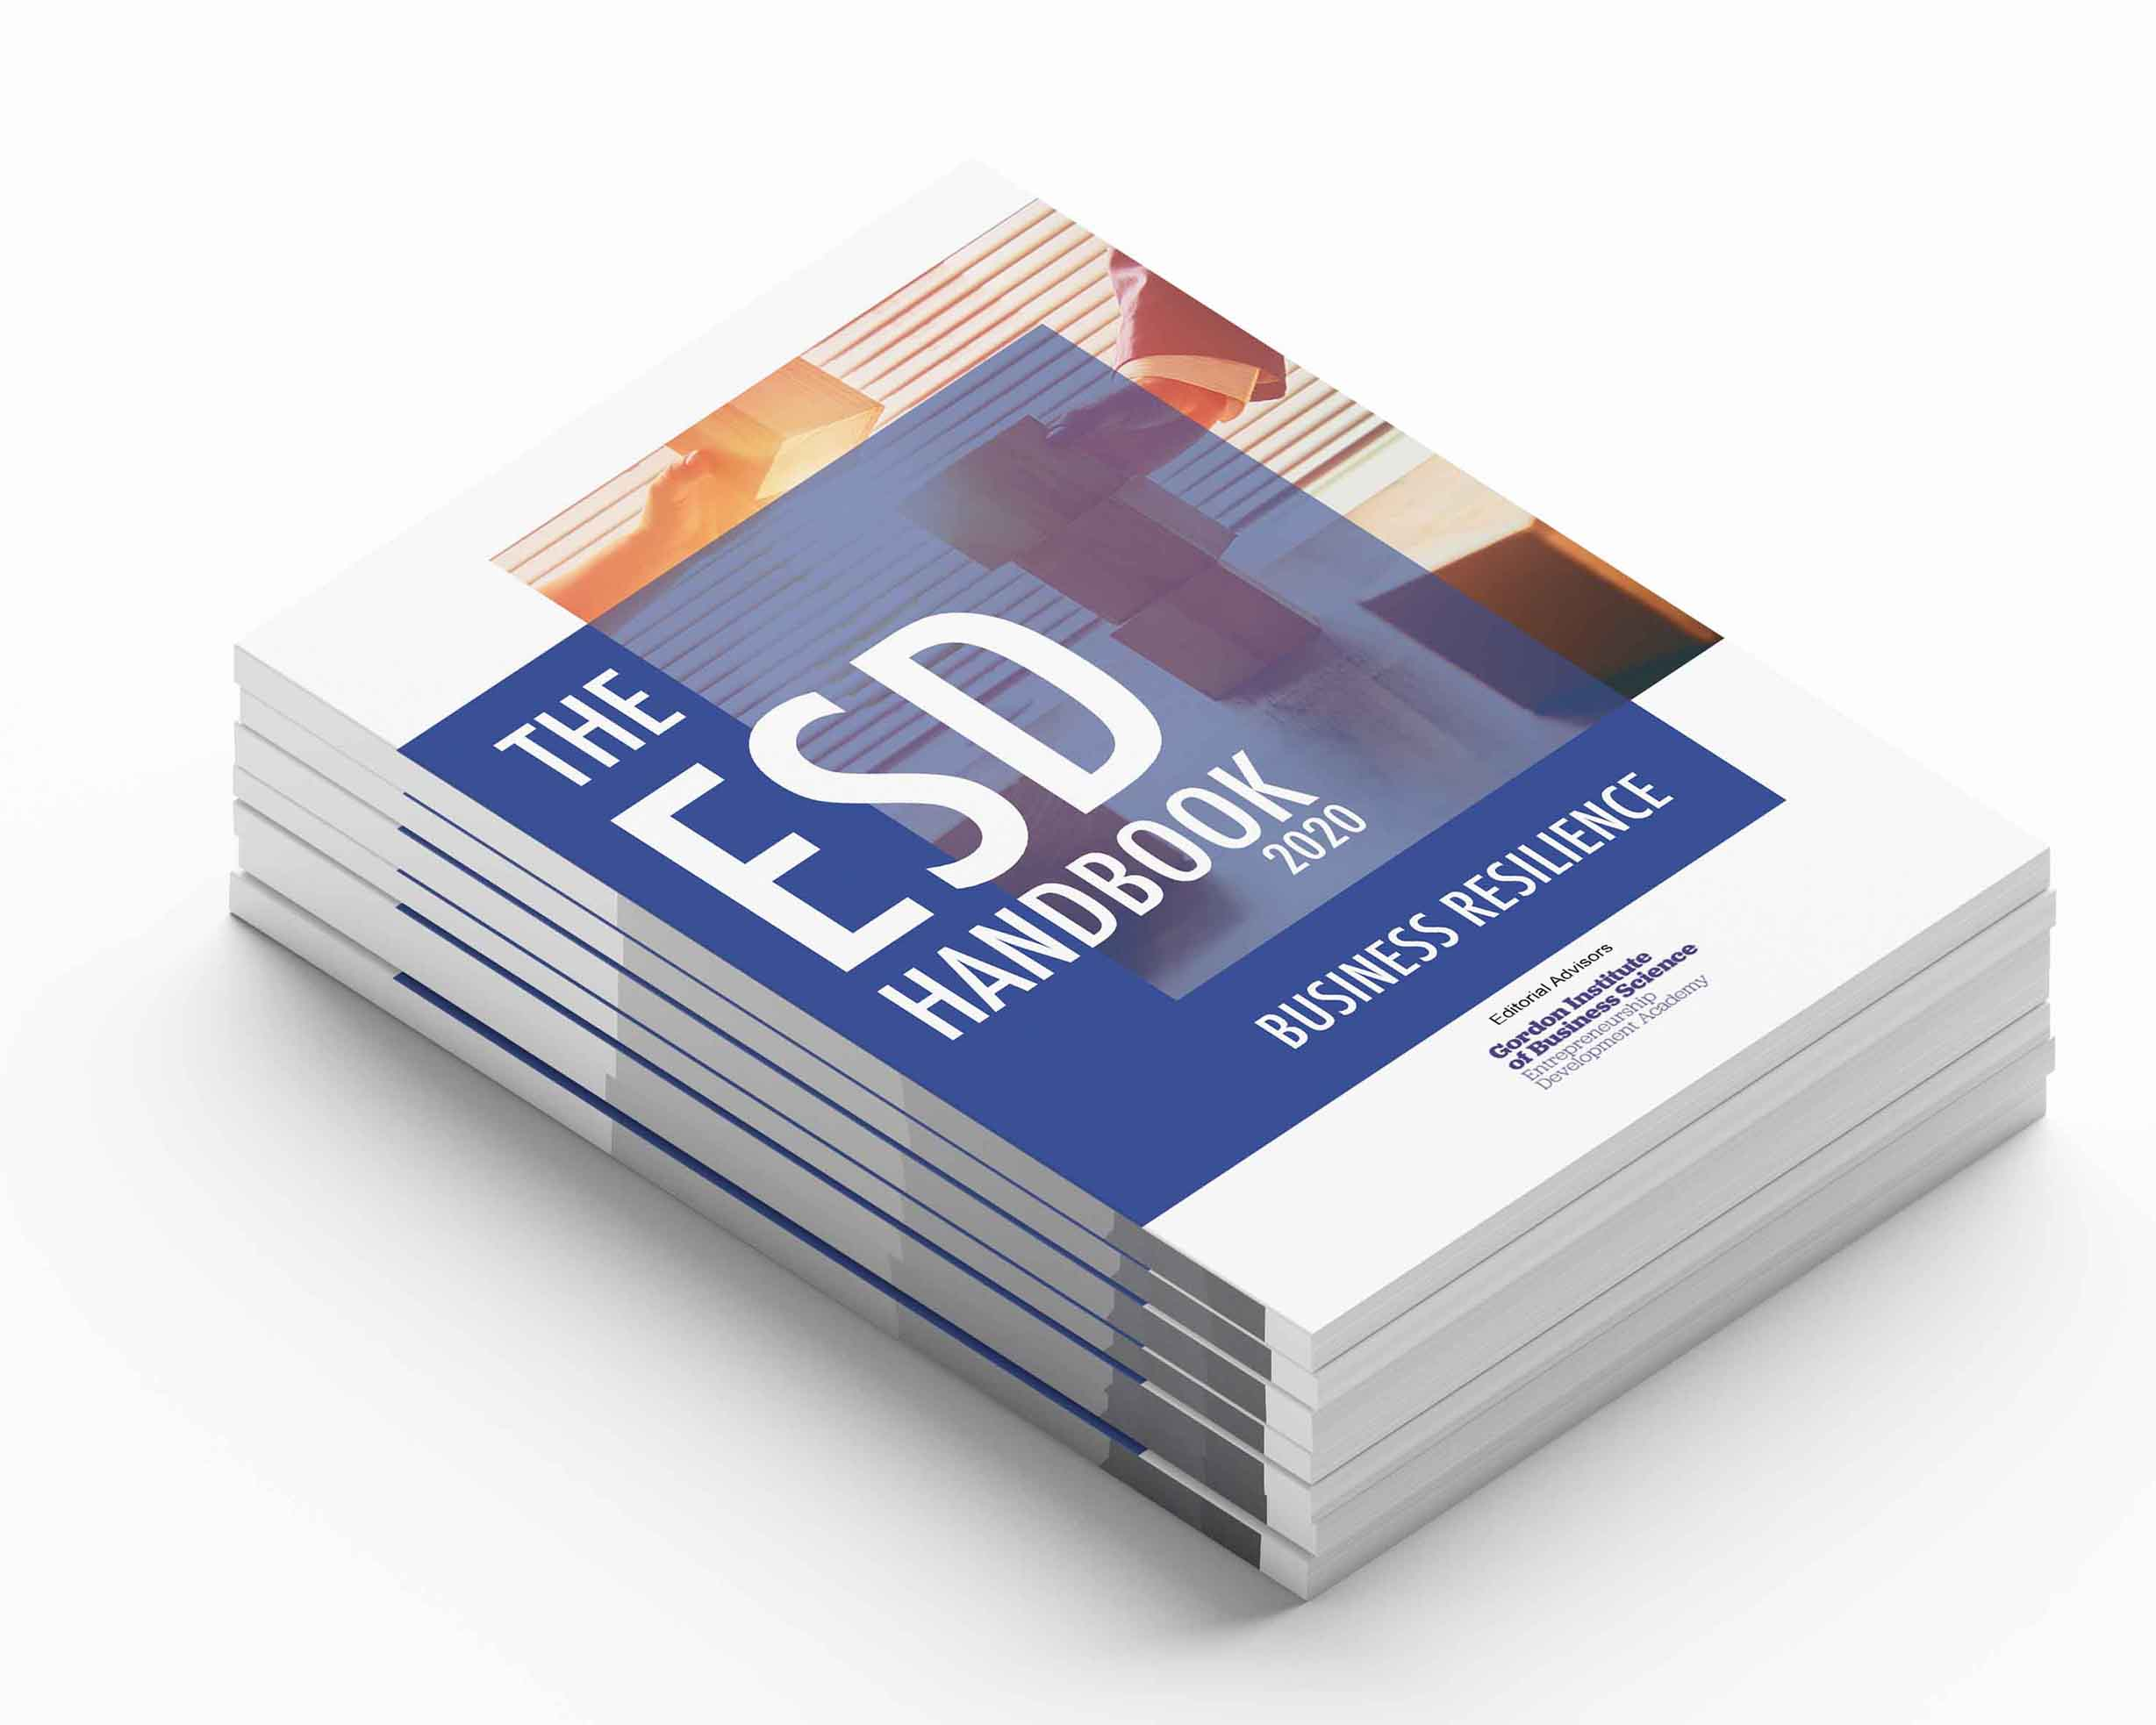 The ESD Handbook 2020: Business Resilience